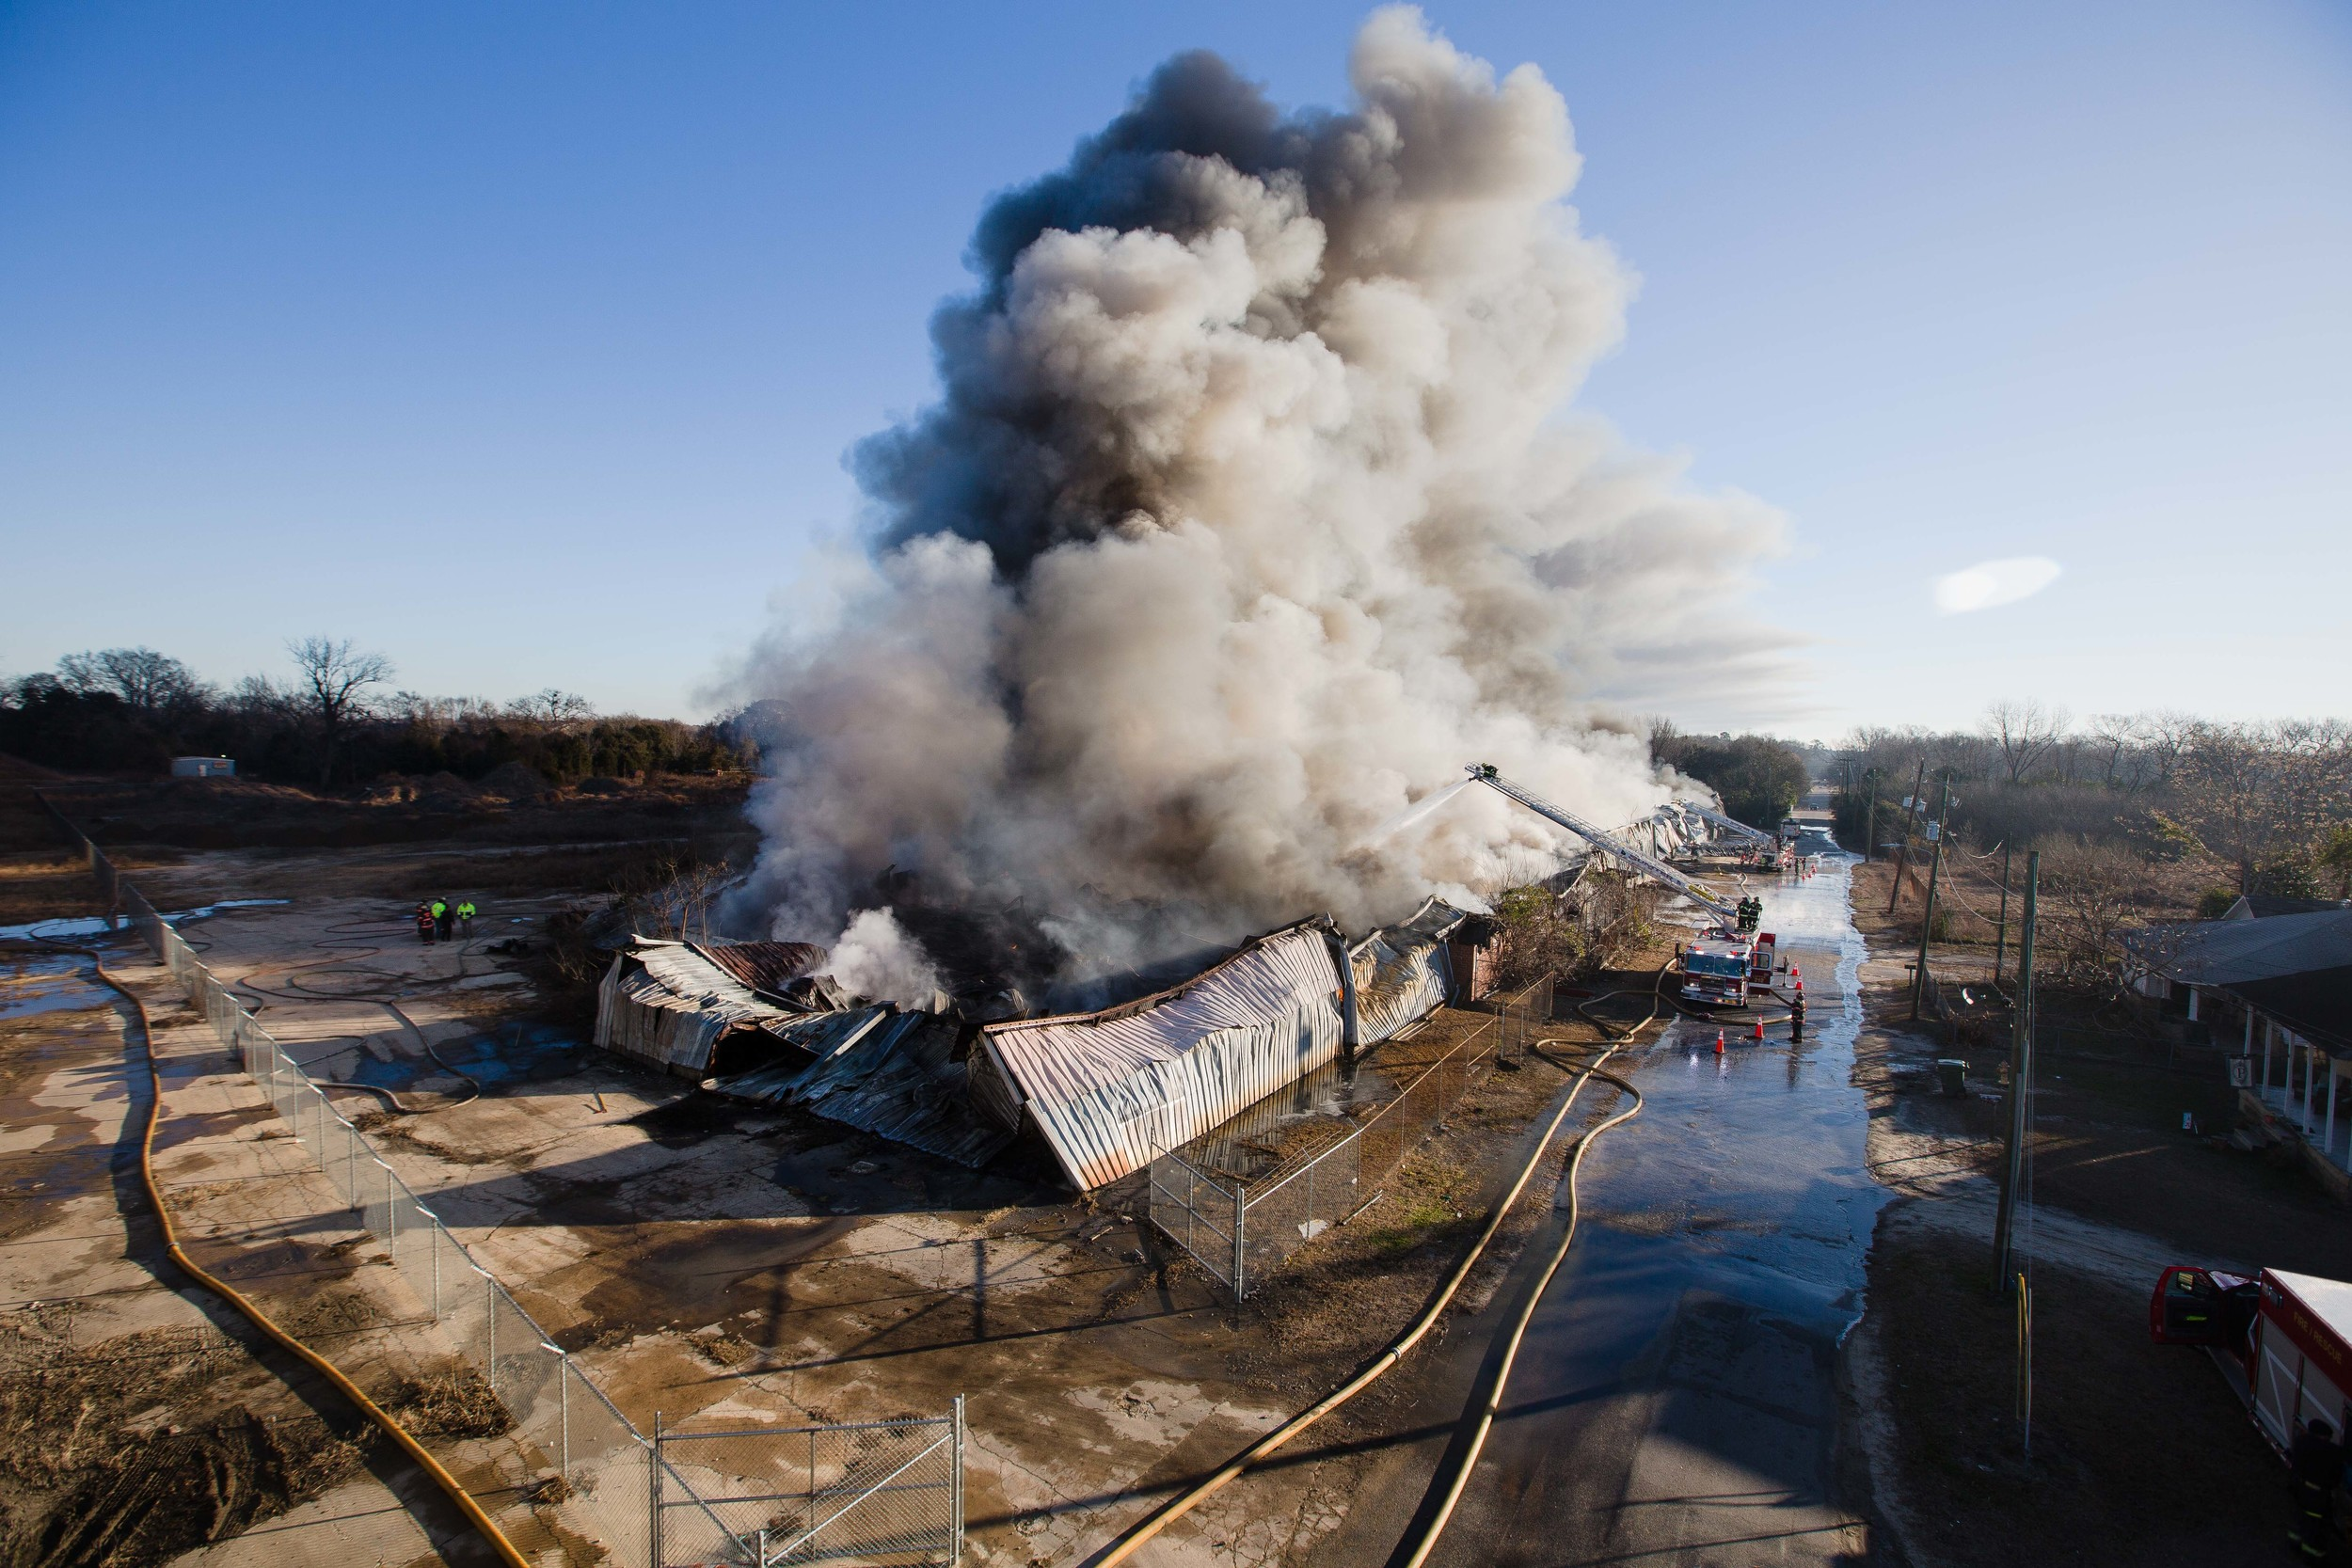 A massive fire burned what officials said was a 400,000-square-foot warehouse on Hauser Street early Friday morning into daylight hours.